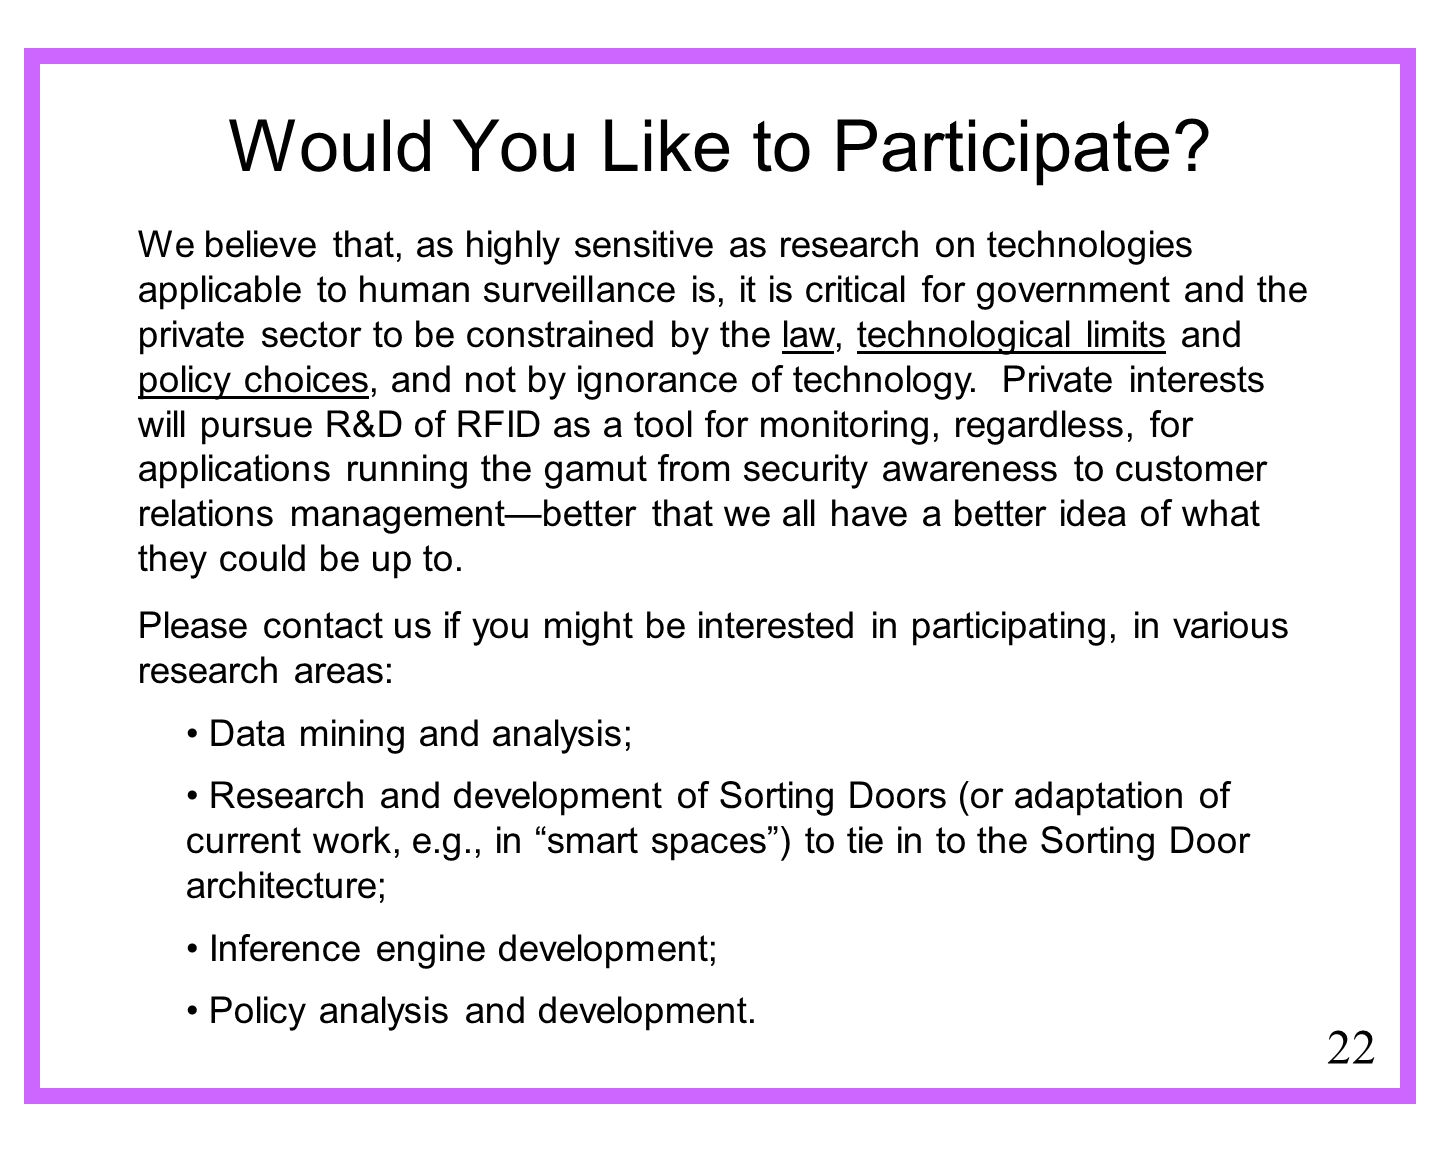 22 Would You Like to Participate? We believe that, as highly sensitive as research on technologies applicable to human surveillance is, it is critical